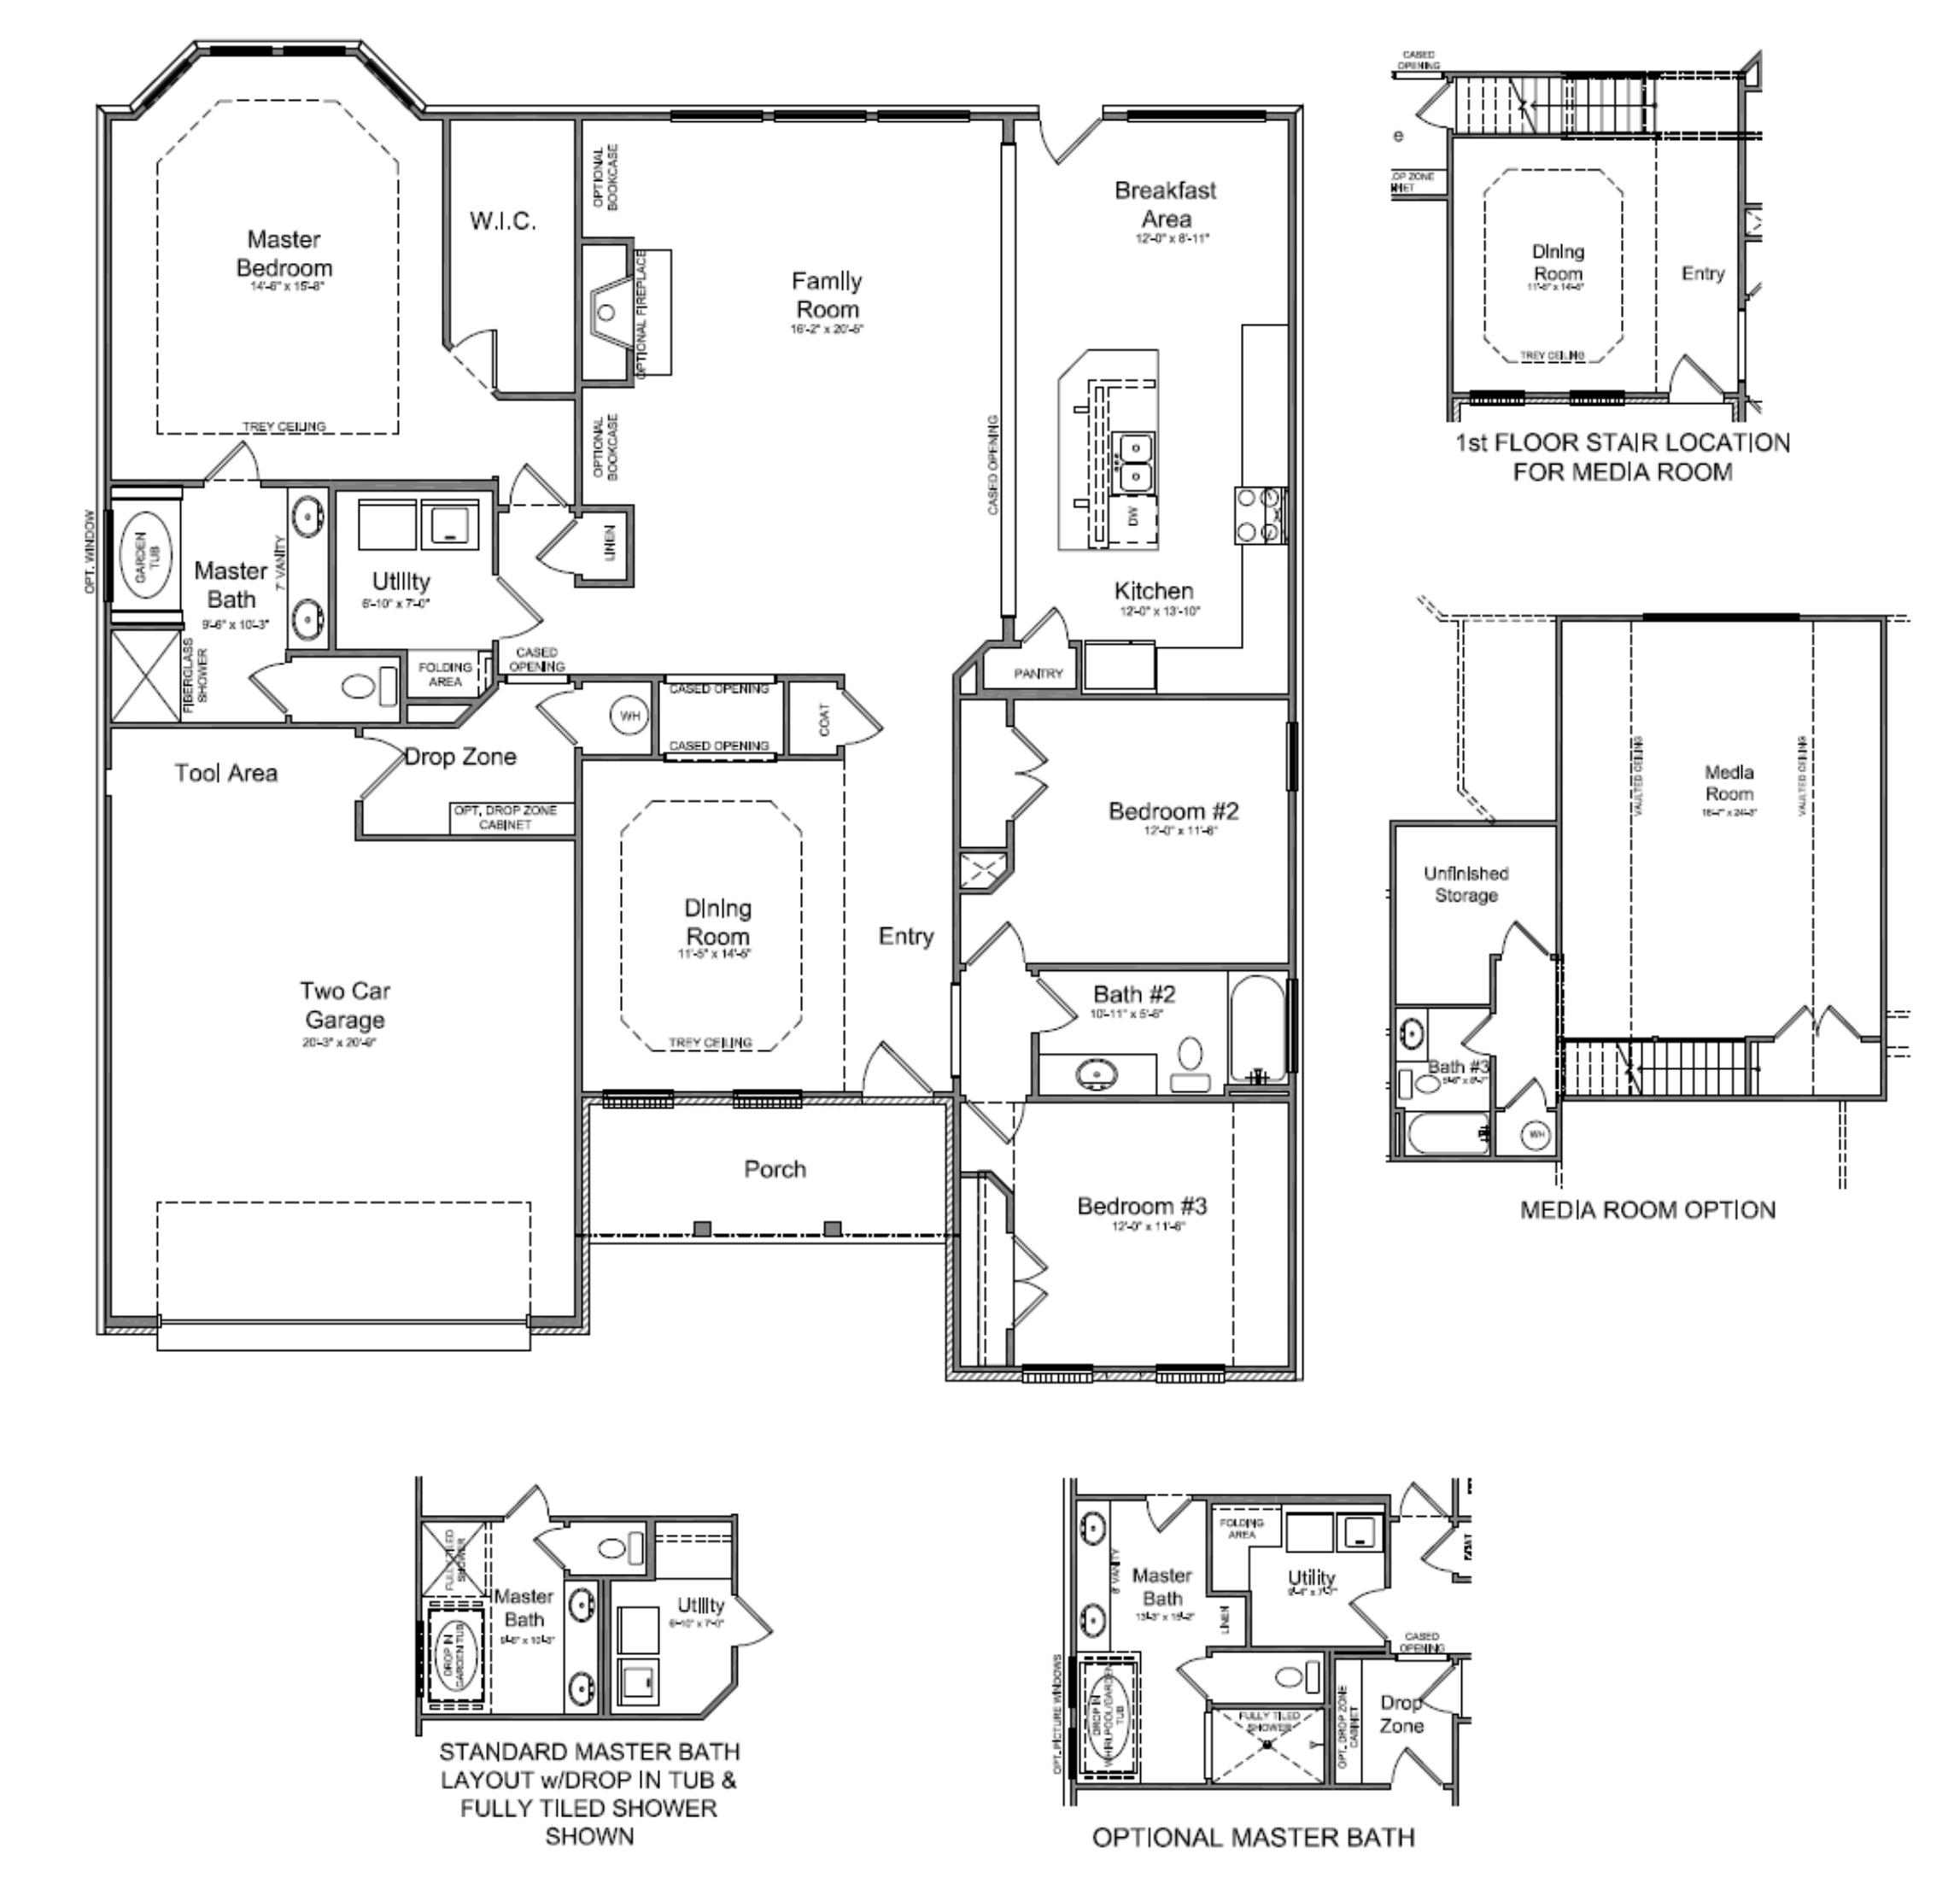 Craftsman Style House Plan 3 Beds 2 5 Baths 3780 Sq Ft Plan 132 207 together with Bungalow House Plans Interior4you 40e457ee1903a6eb besides Floor Plans in addition Floor Plans additionally Wheelchair Accessible House Plans. on 2 bedroom house floor plans